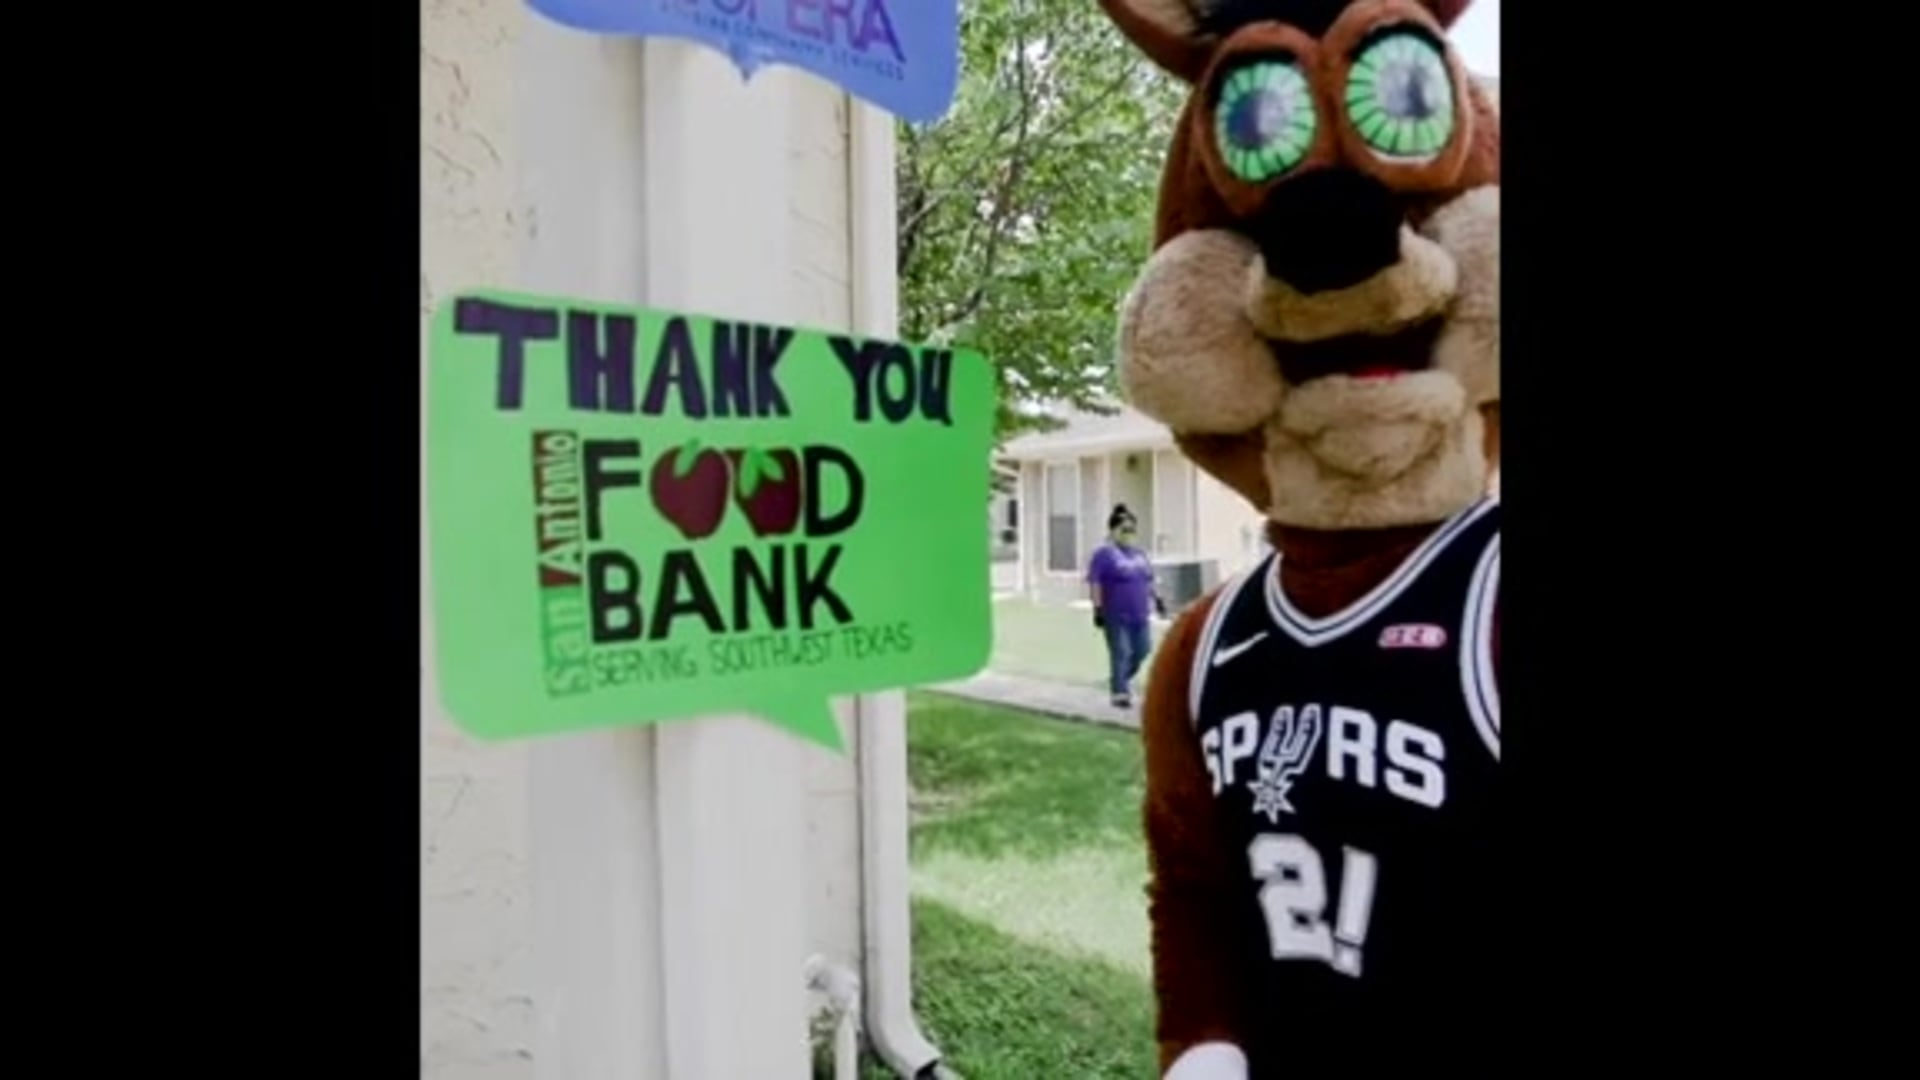 SPURS GIVE AND THE TIM DUNCAN FOUNDATION TO DONATE $200,000 TO THE SAN ANTONIO FOOD BANK